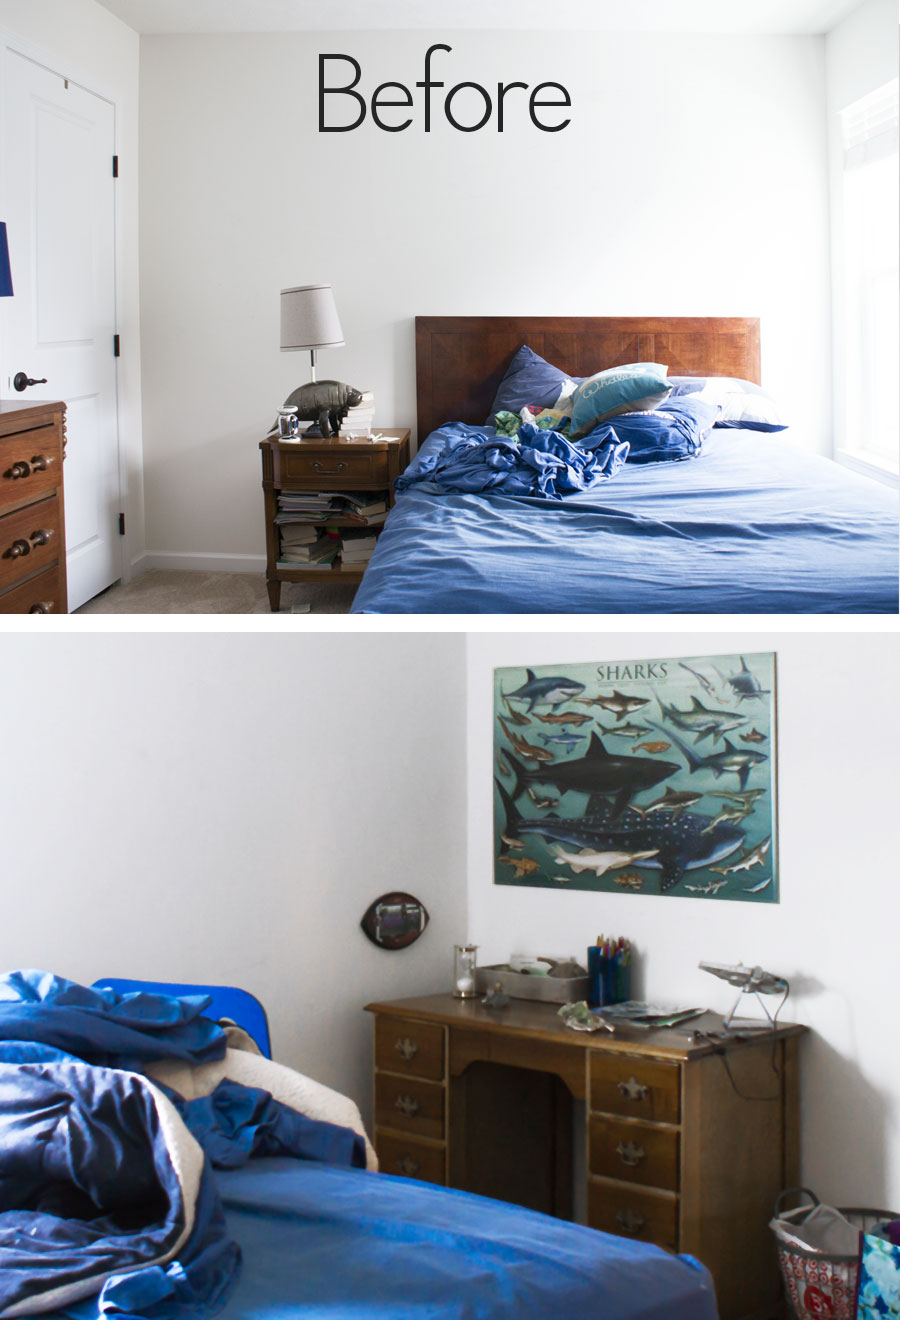 Fabulous DIY Nautical shark theme bedroom makeover with DIY copper Pipe Ceiling light Copper Pipe & DIY Teen Bedroom Makeover - Paint Yourself A Smile